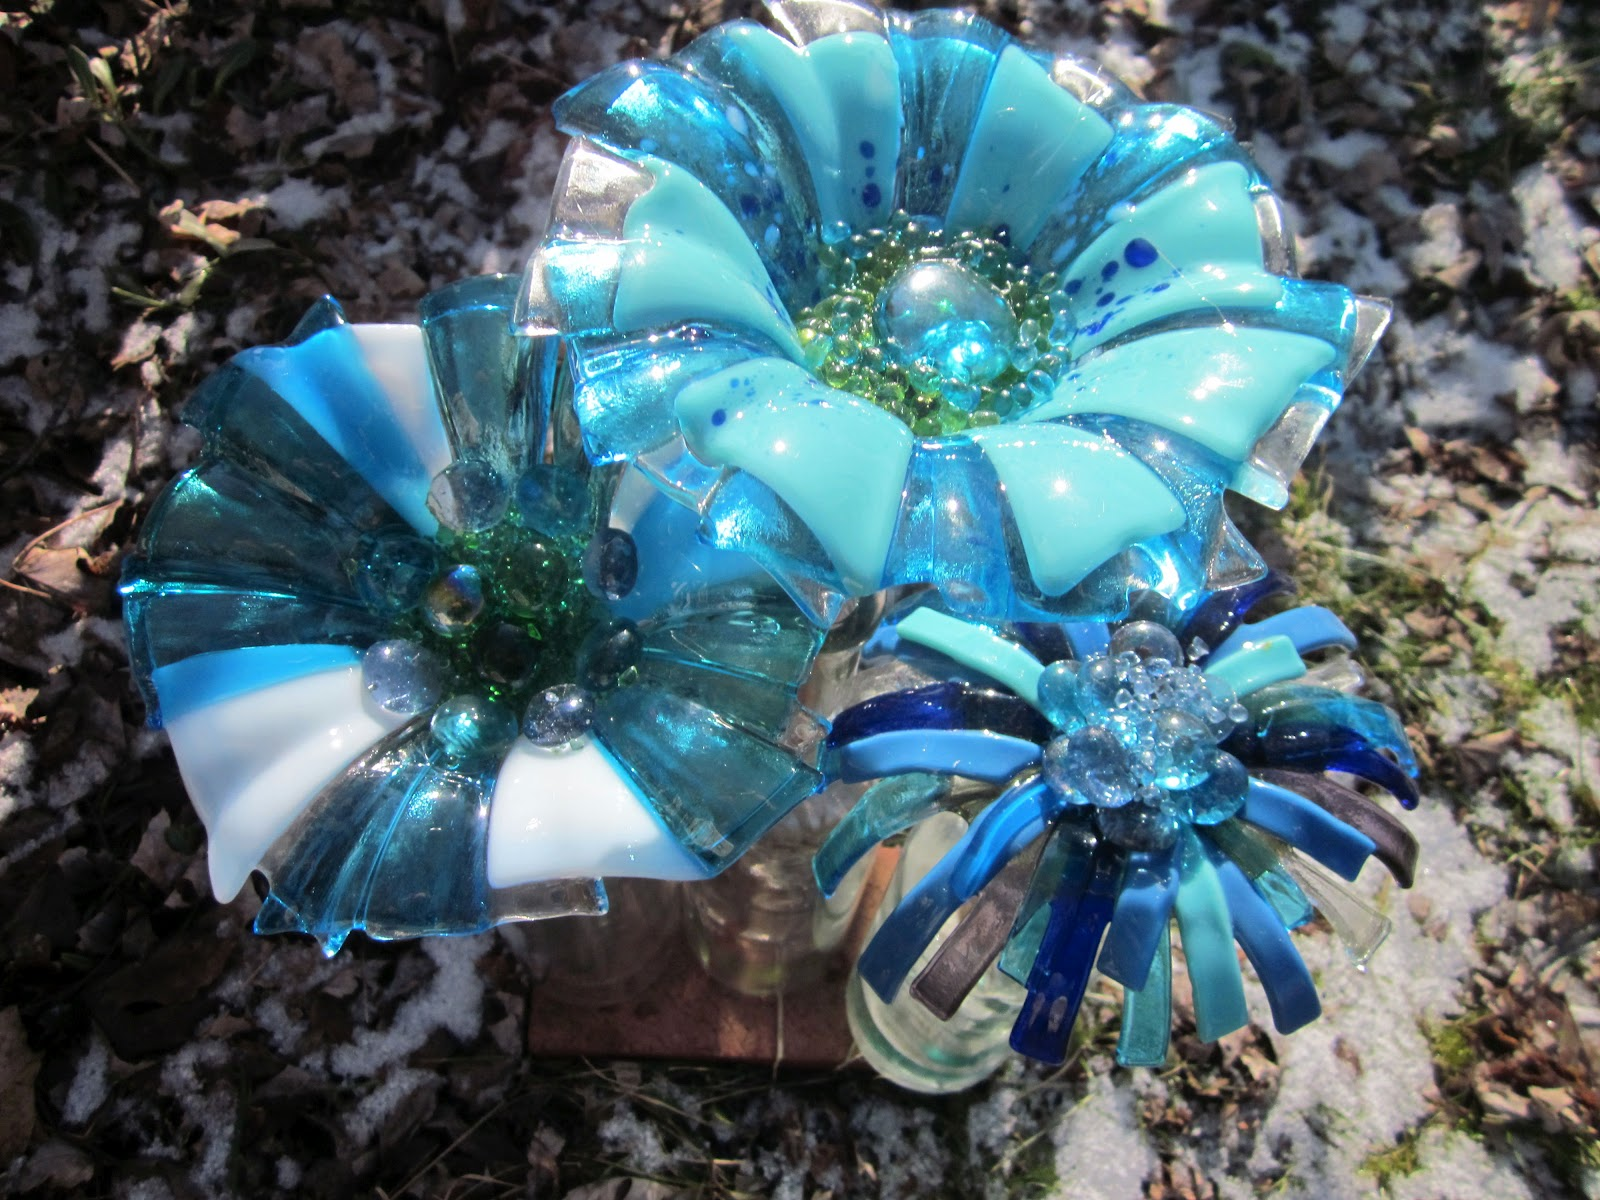 How to make glass yard art - Fused Glass Garden Art